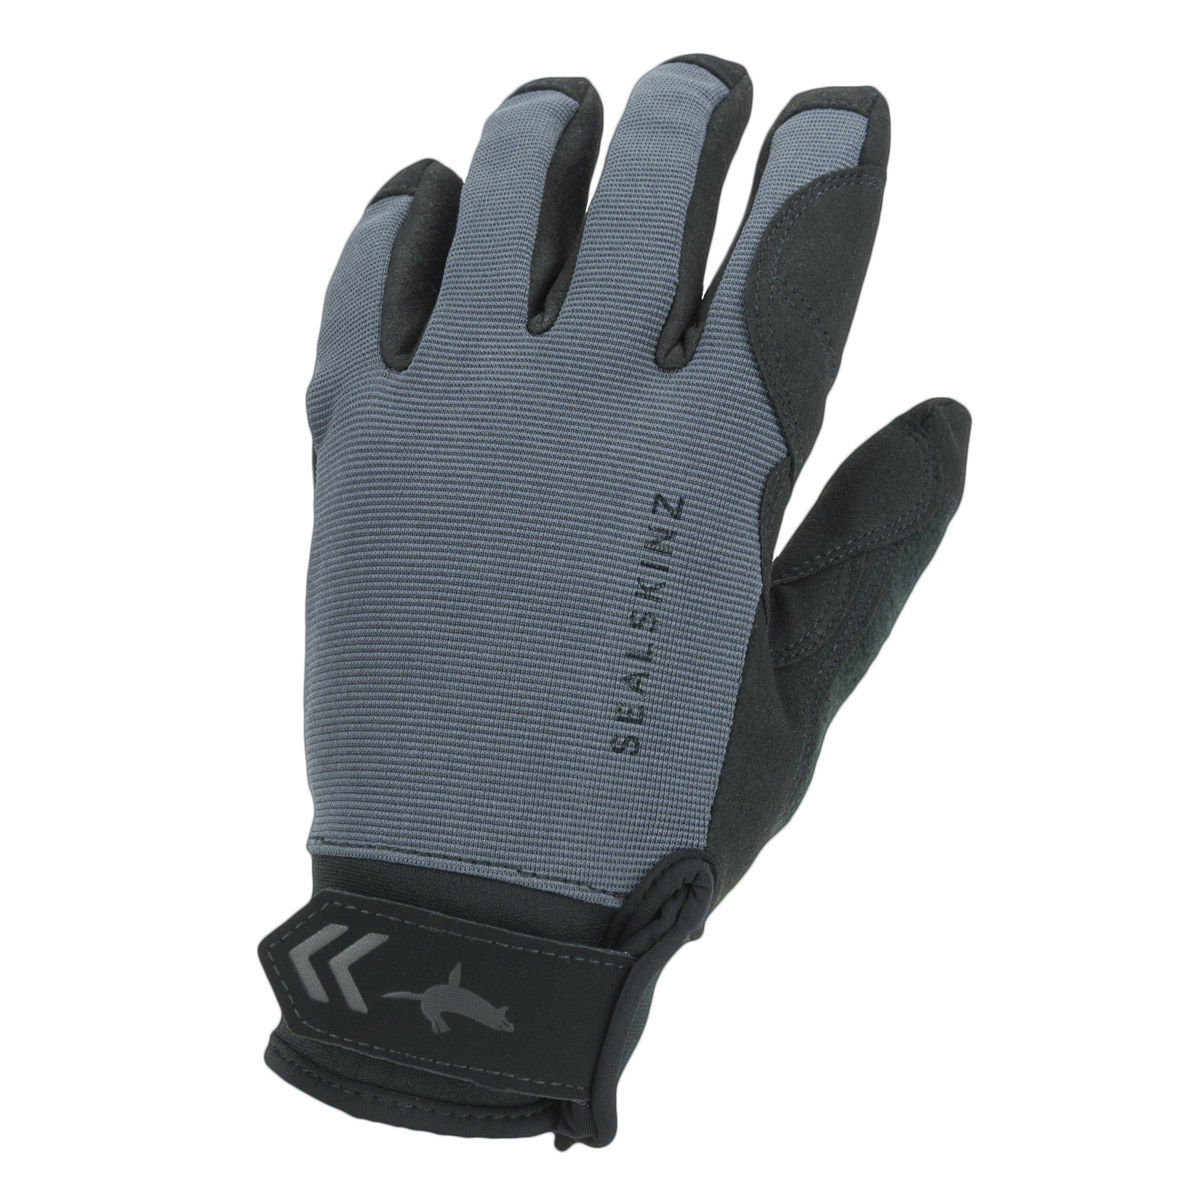 SealSkinz Waterproof All Weather Gloves